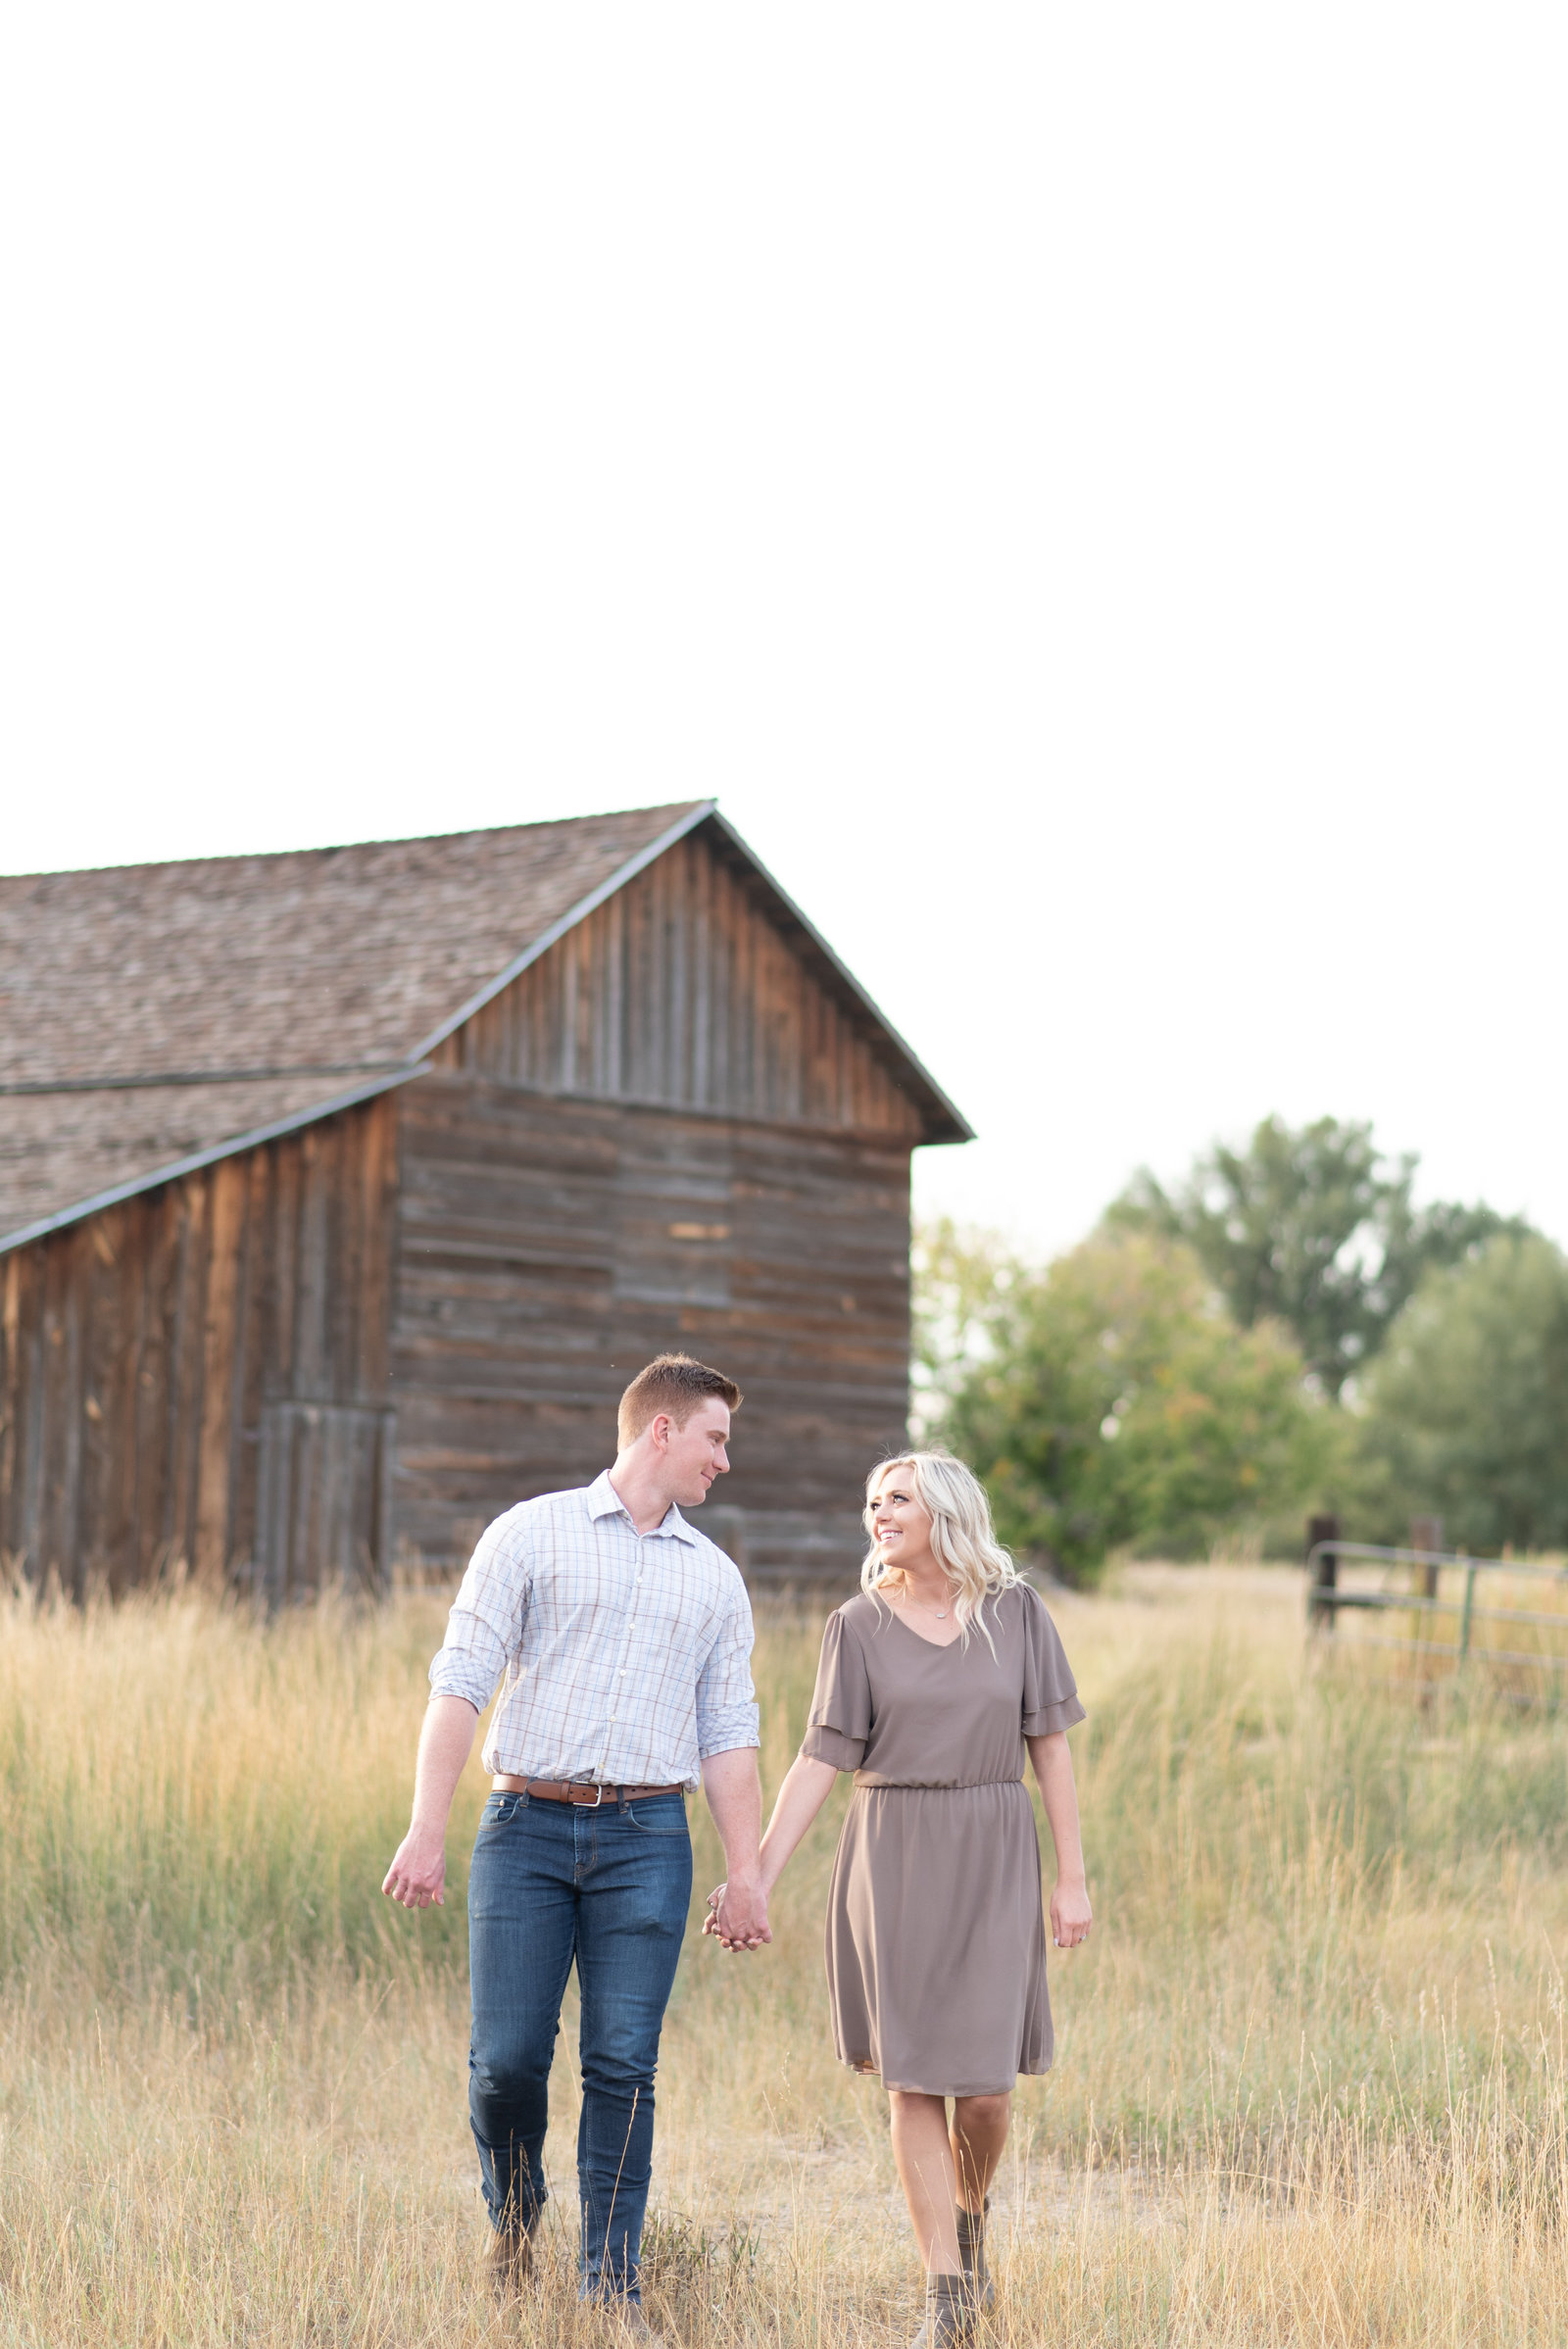 Summer engagement photos at Sandstone Ranch